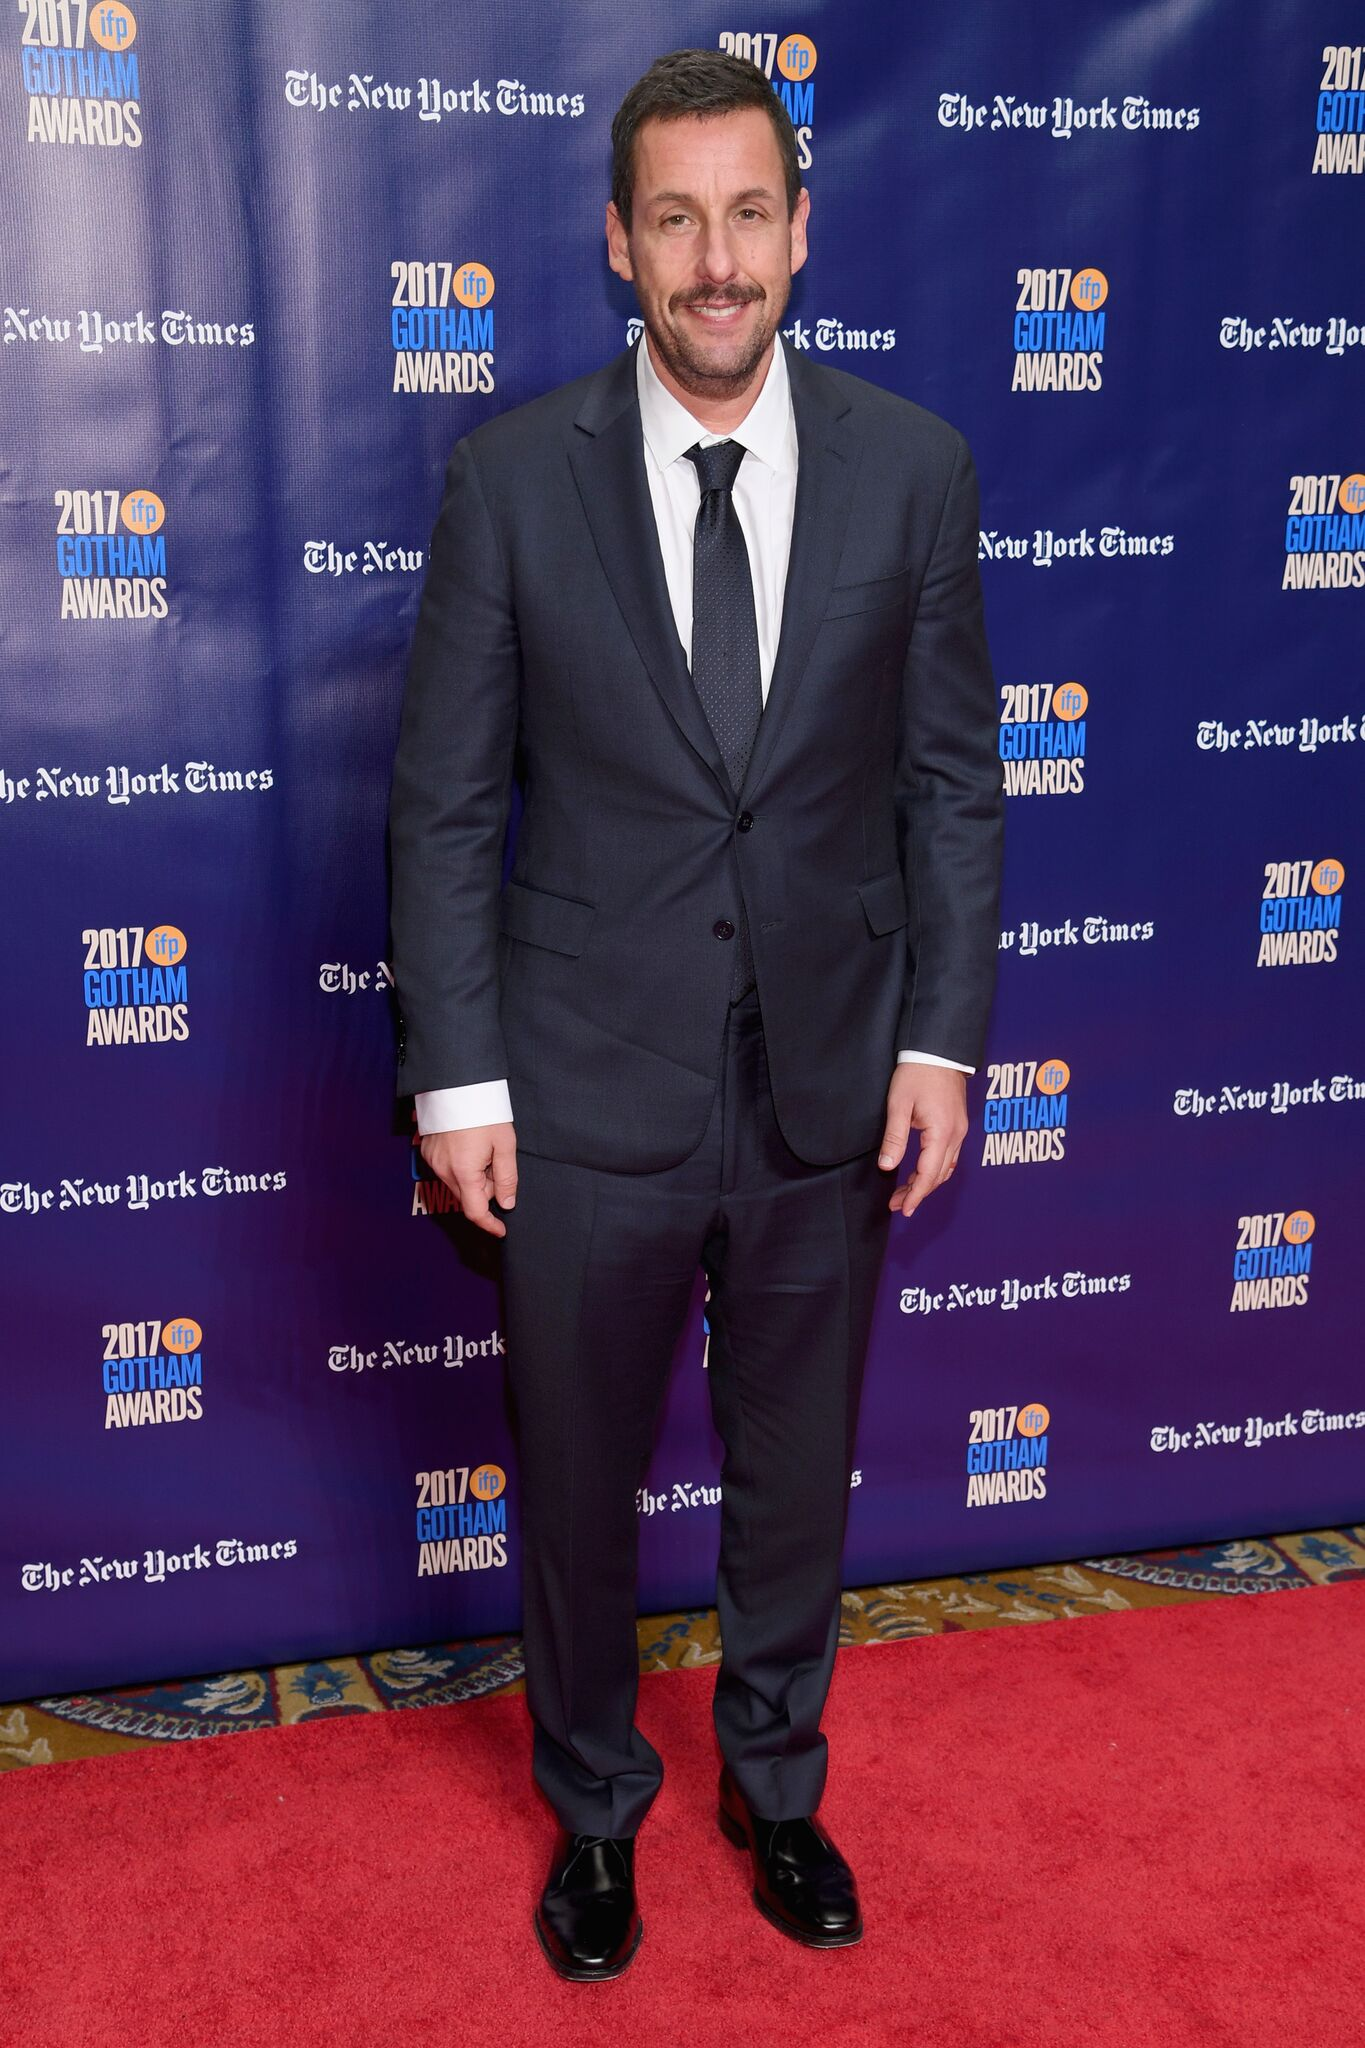 Actor Adam Sandler attends IFP's 27th Annual Gotham Independent Film Awards | Getty Images / Global Images Ukraine